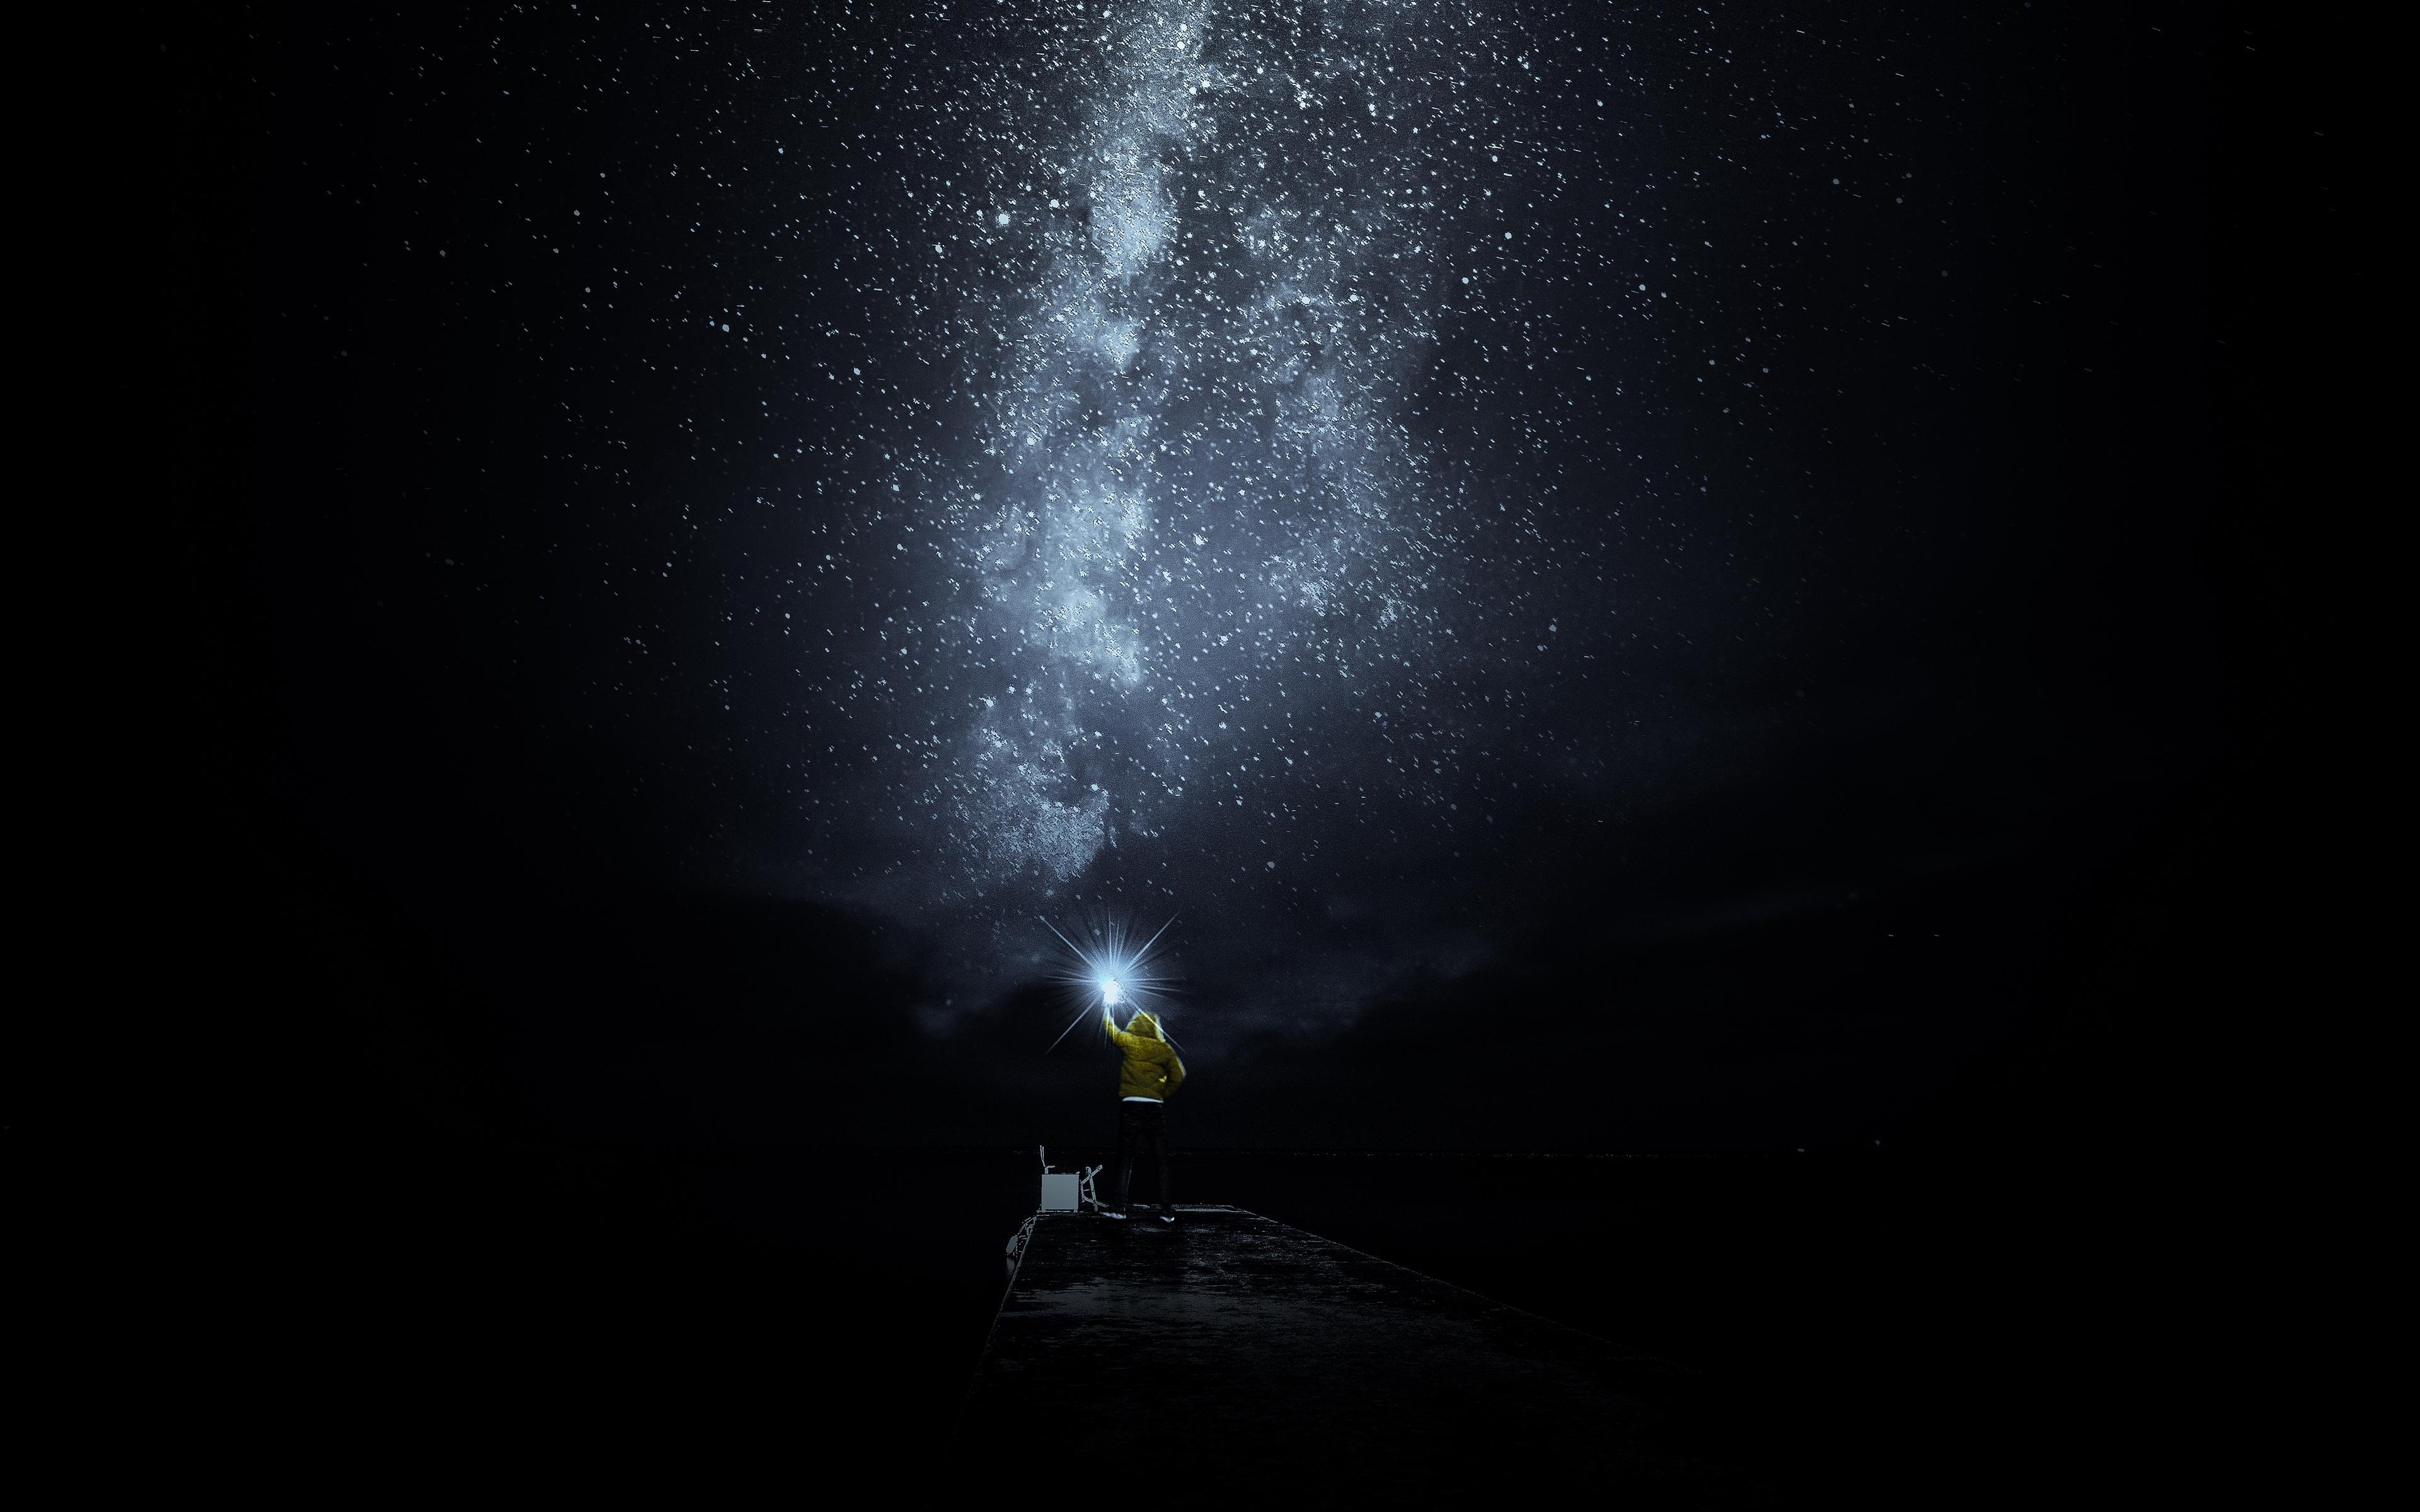 Download wallpapers 3840x2400 starry sky, man, loneliness, lonely